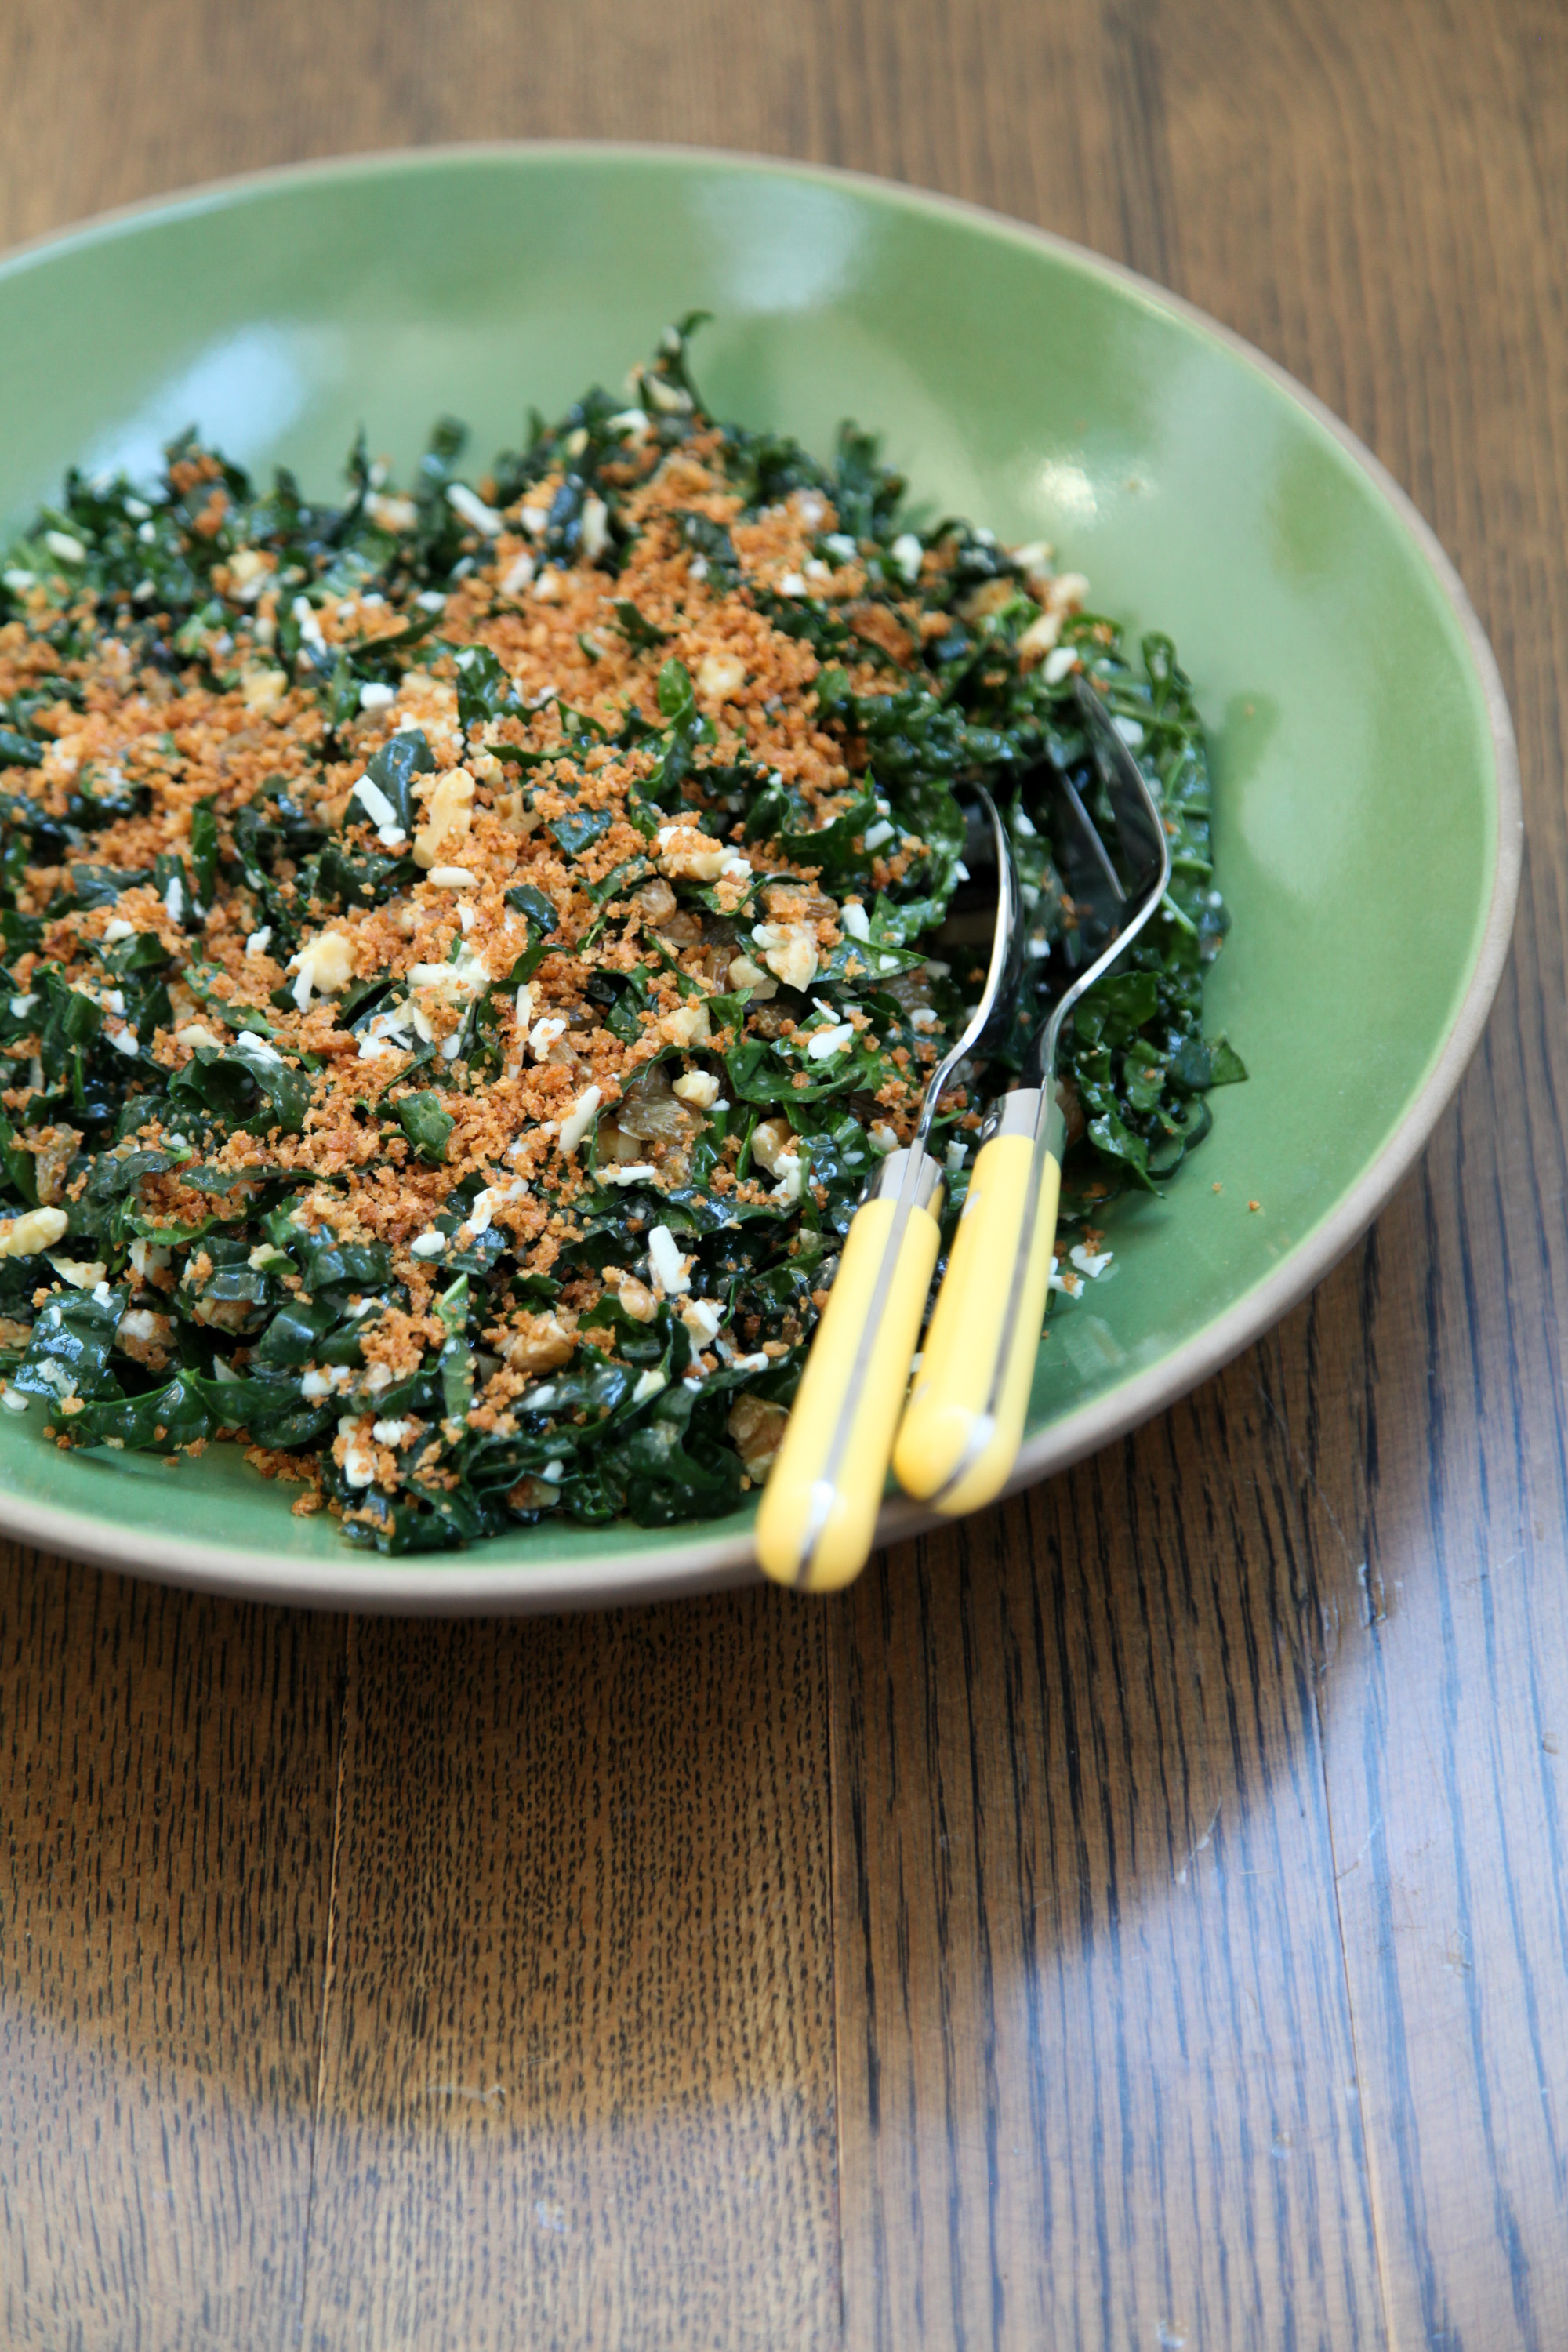 Kale Salad With Walnuts, Golden Raisins, and Toasted Breadcrumbs | amodestfeast.com | A Modest Feast